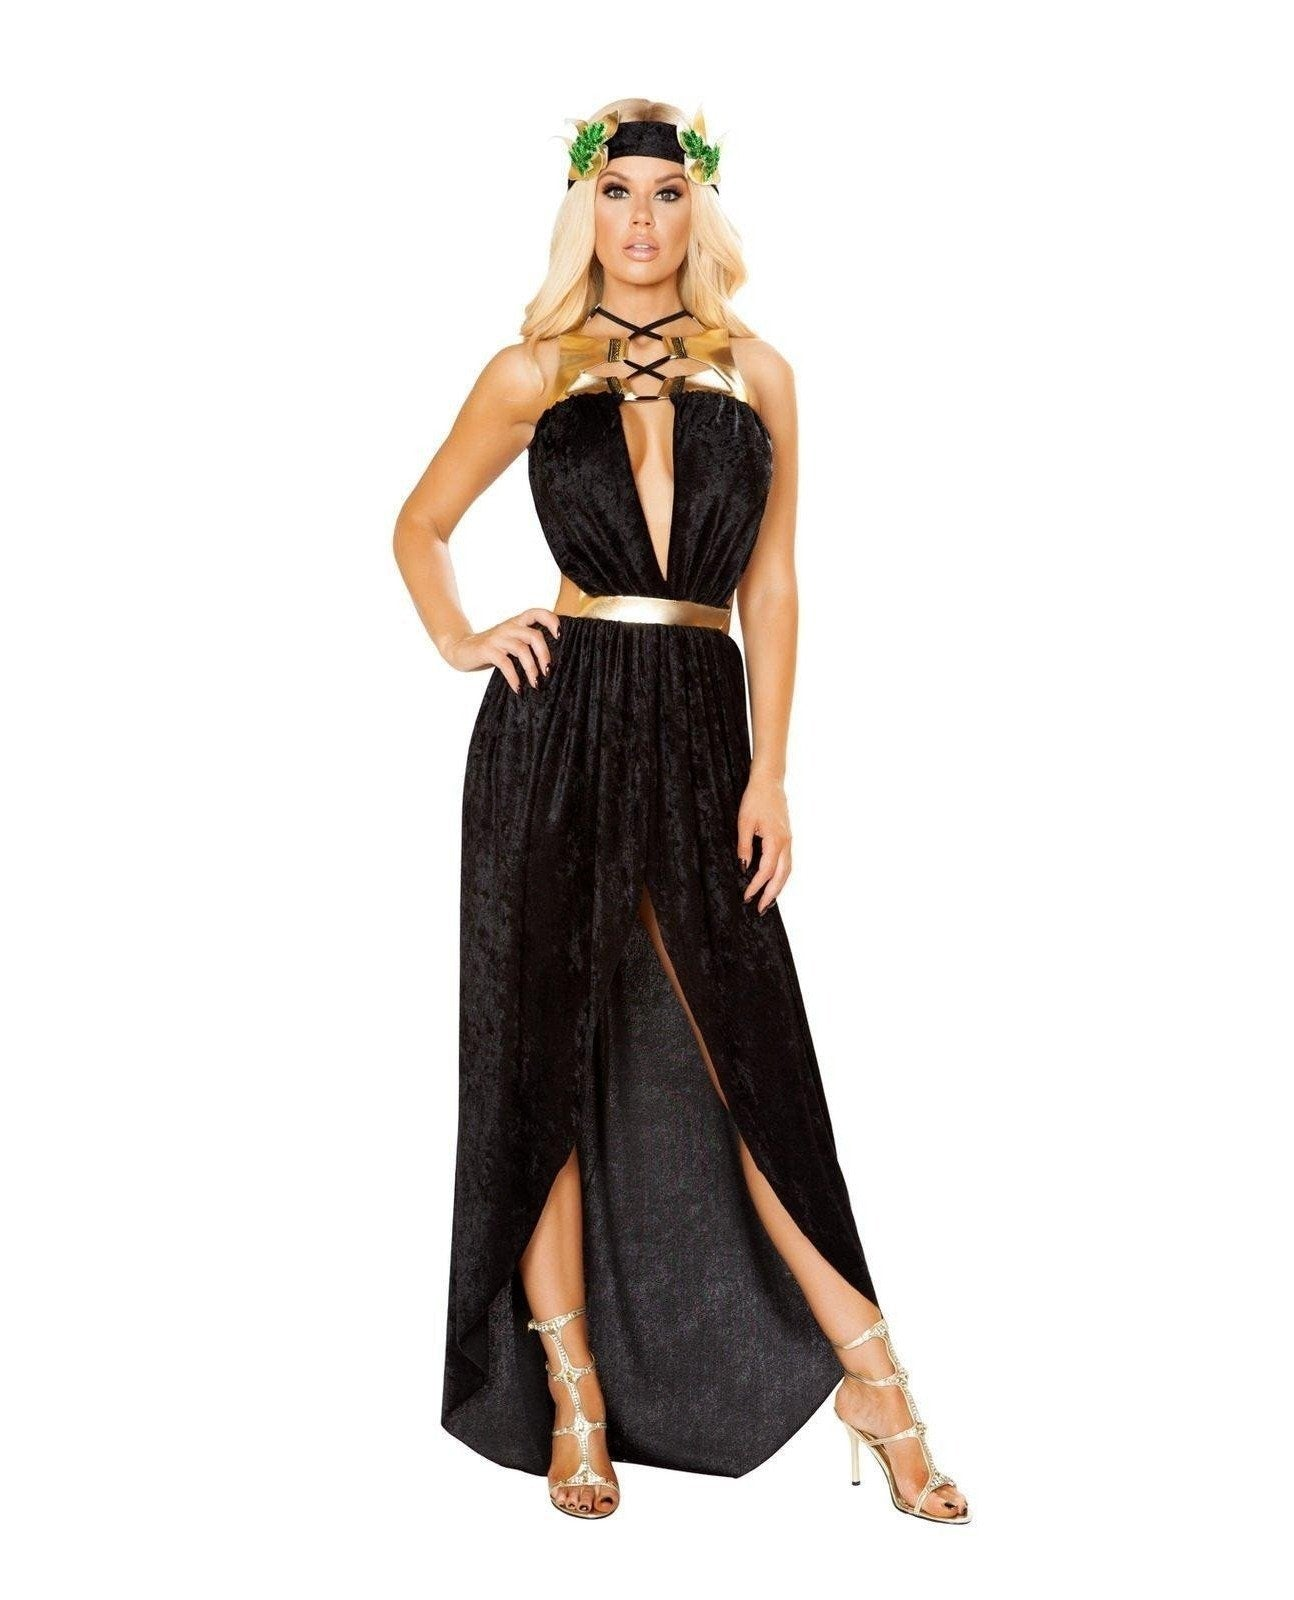 Greek Goddess Costume Costumes Size S/MColor Black/GoldNakees